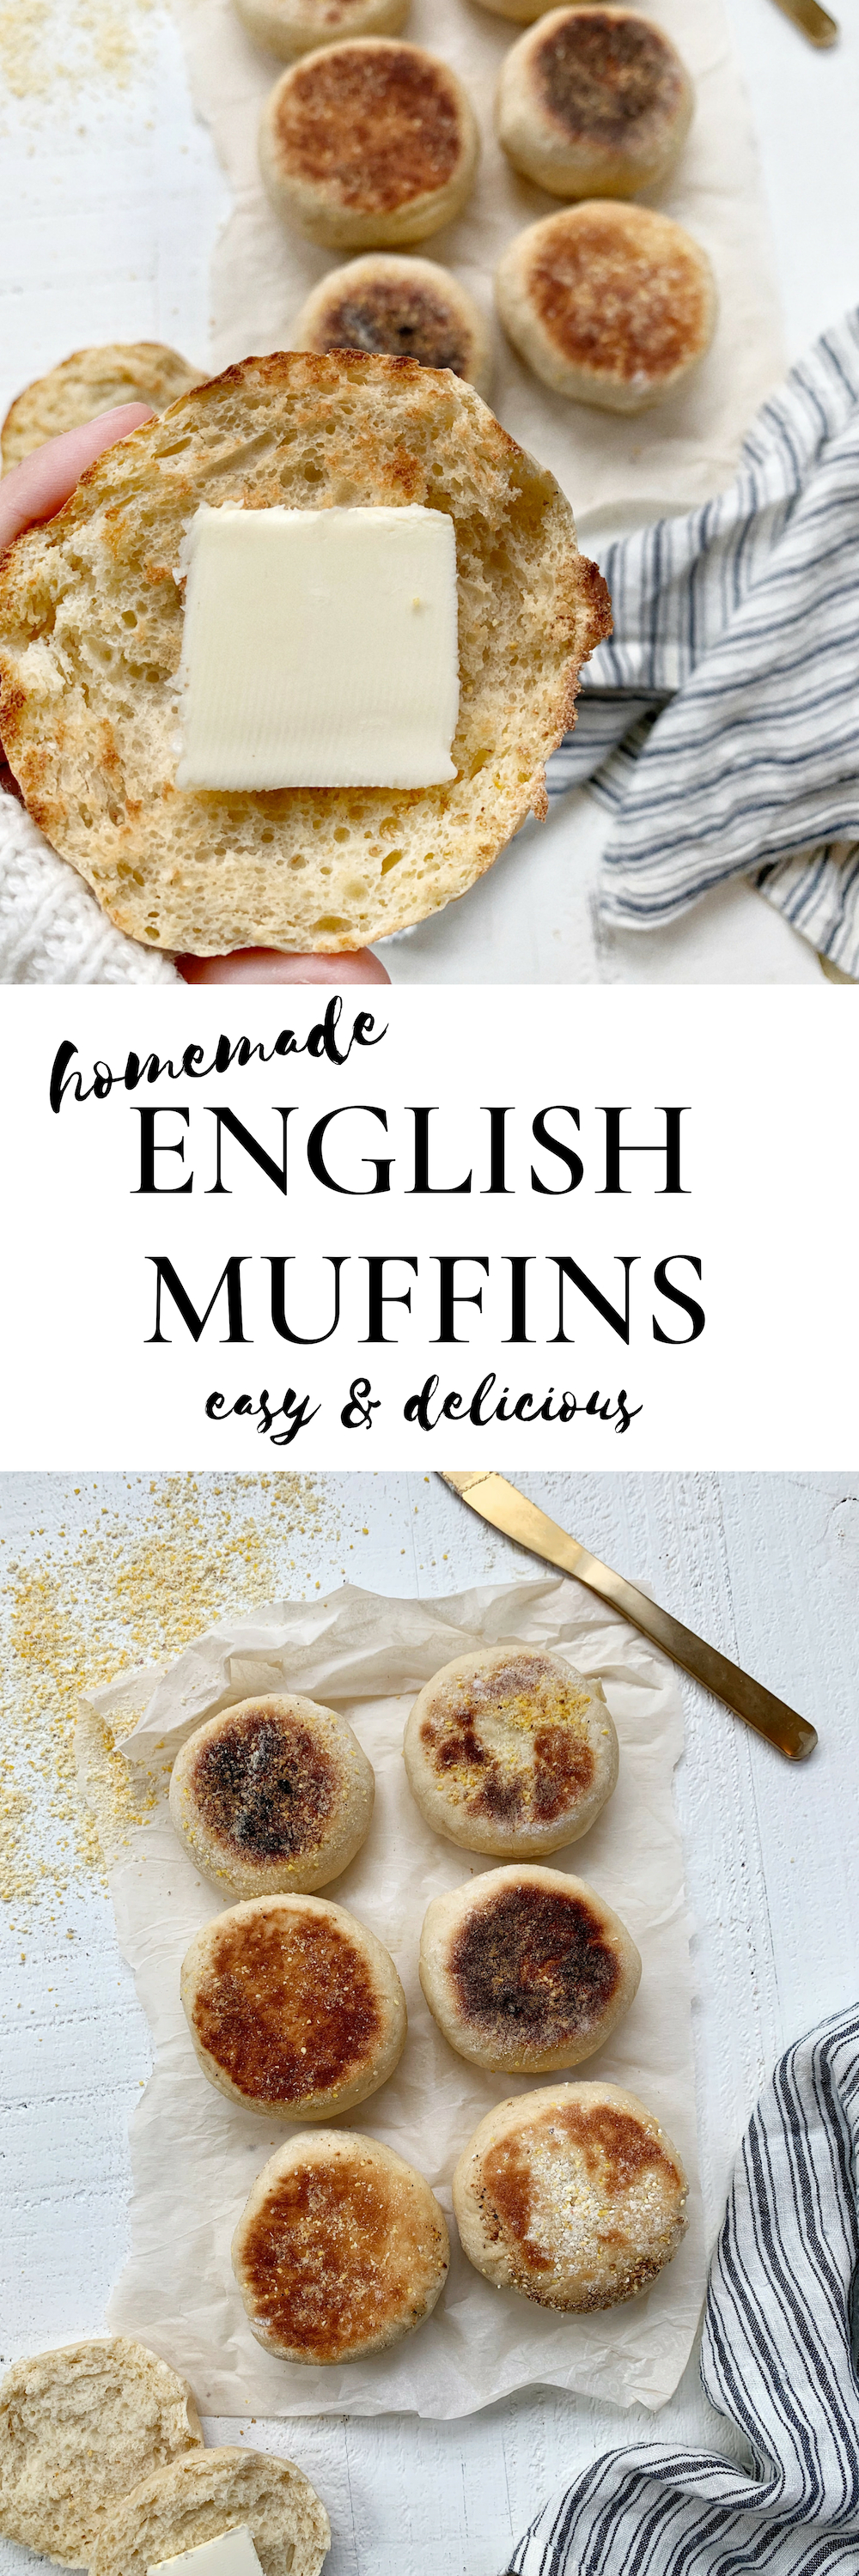 homemade english muffin recipe